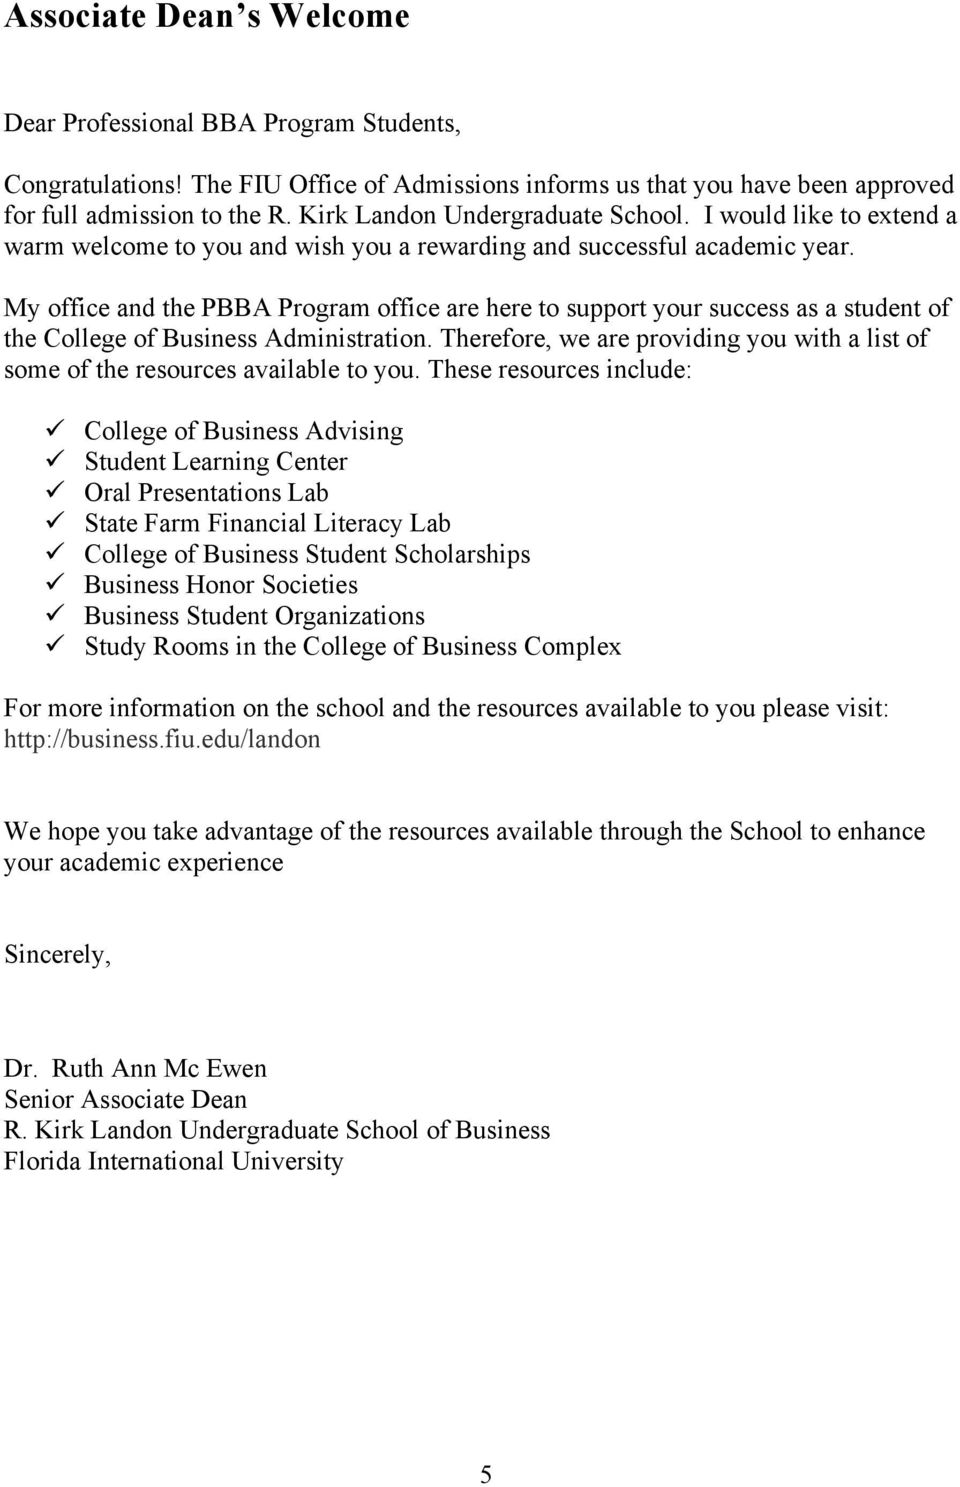 My office and the PBBA Program office are here to support your success as a student of the College of Business Administration.